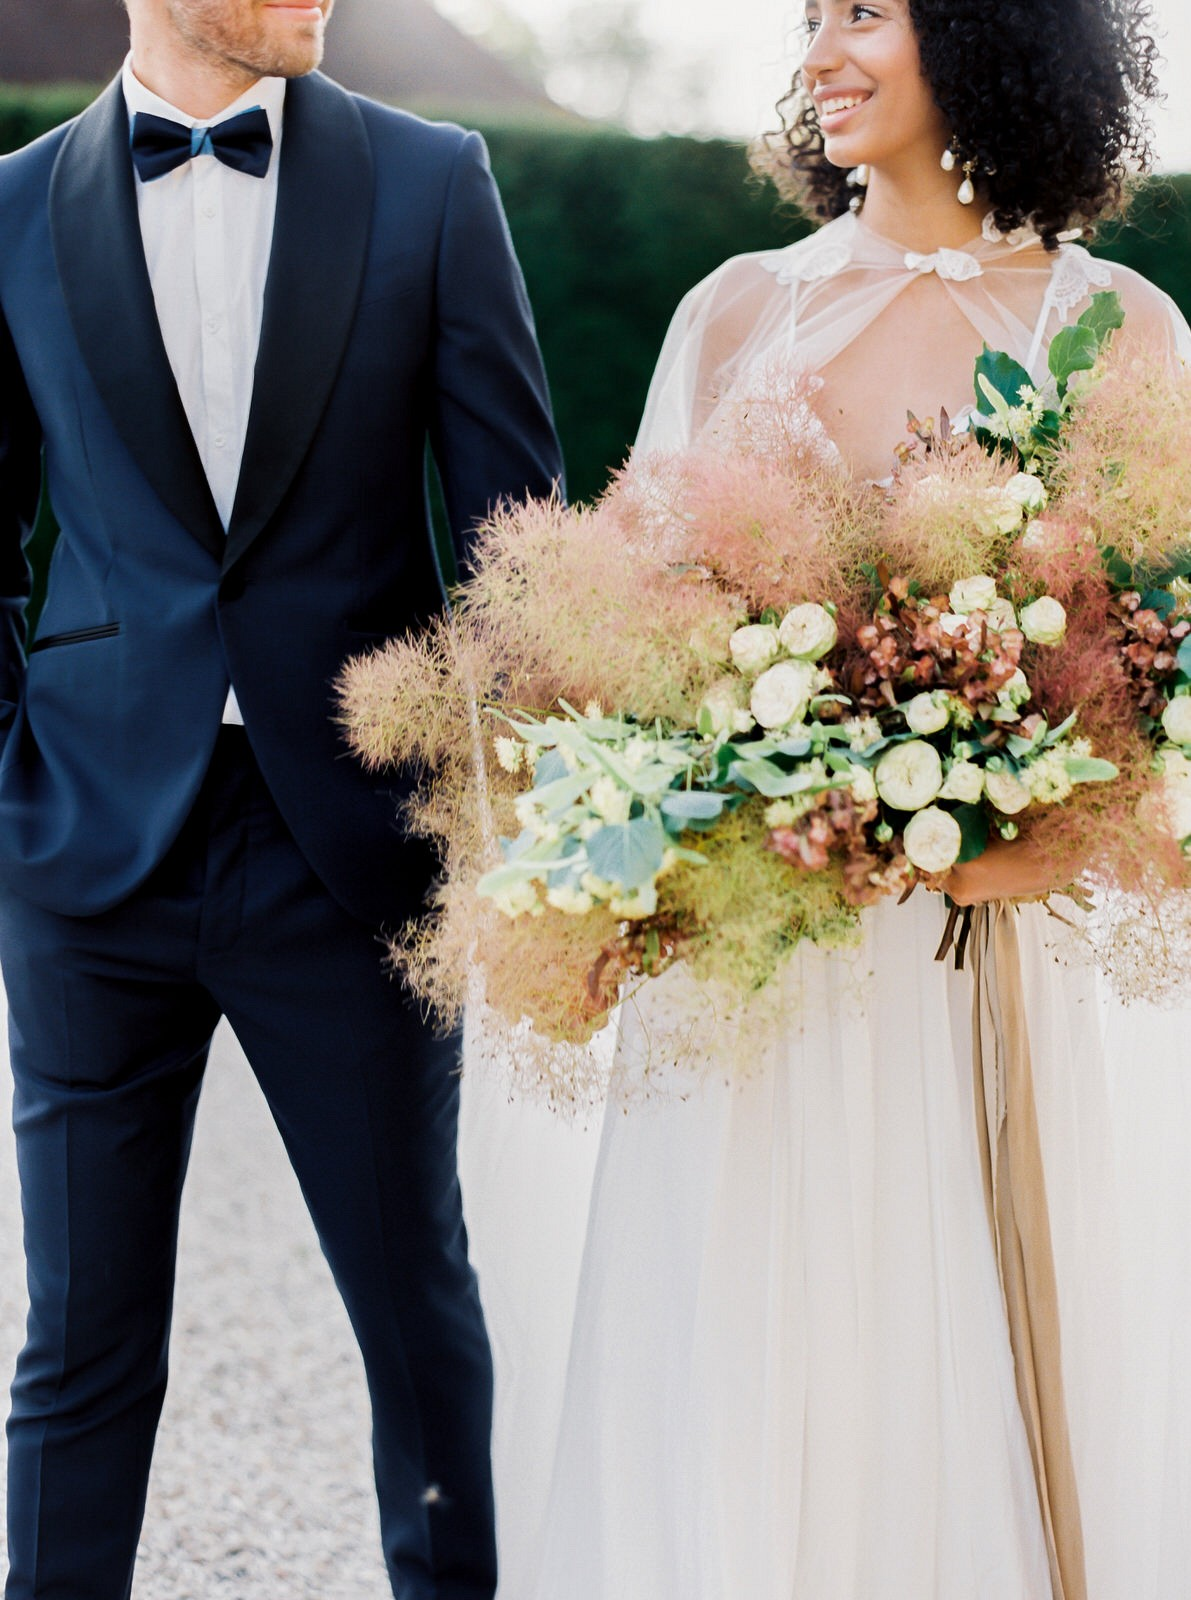 5 Things You Have To Consider Before Planning Your Wedding in France